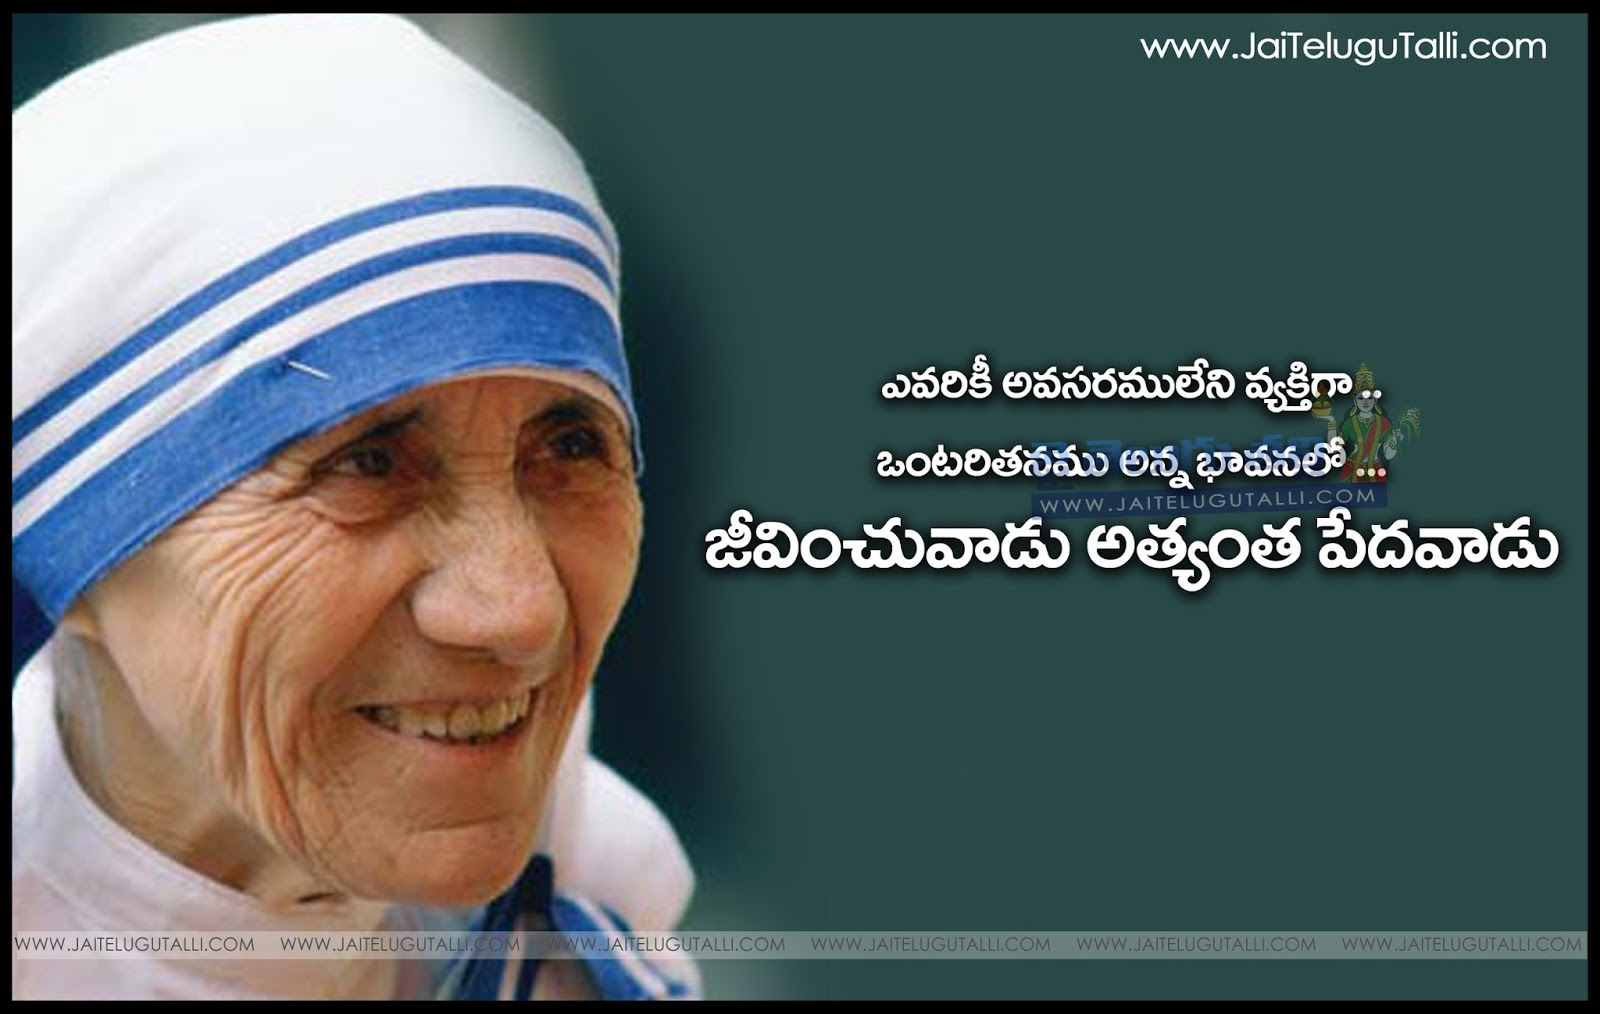 Inspirational Thoughts Mother Teresa Telugu Qutations Hd Pictures Best Inspirational